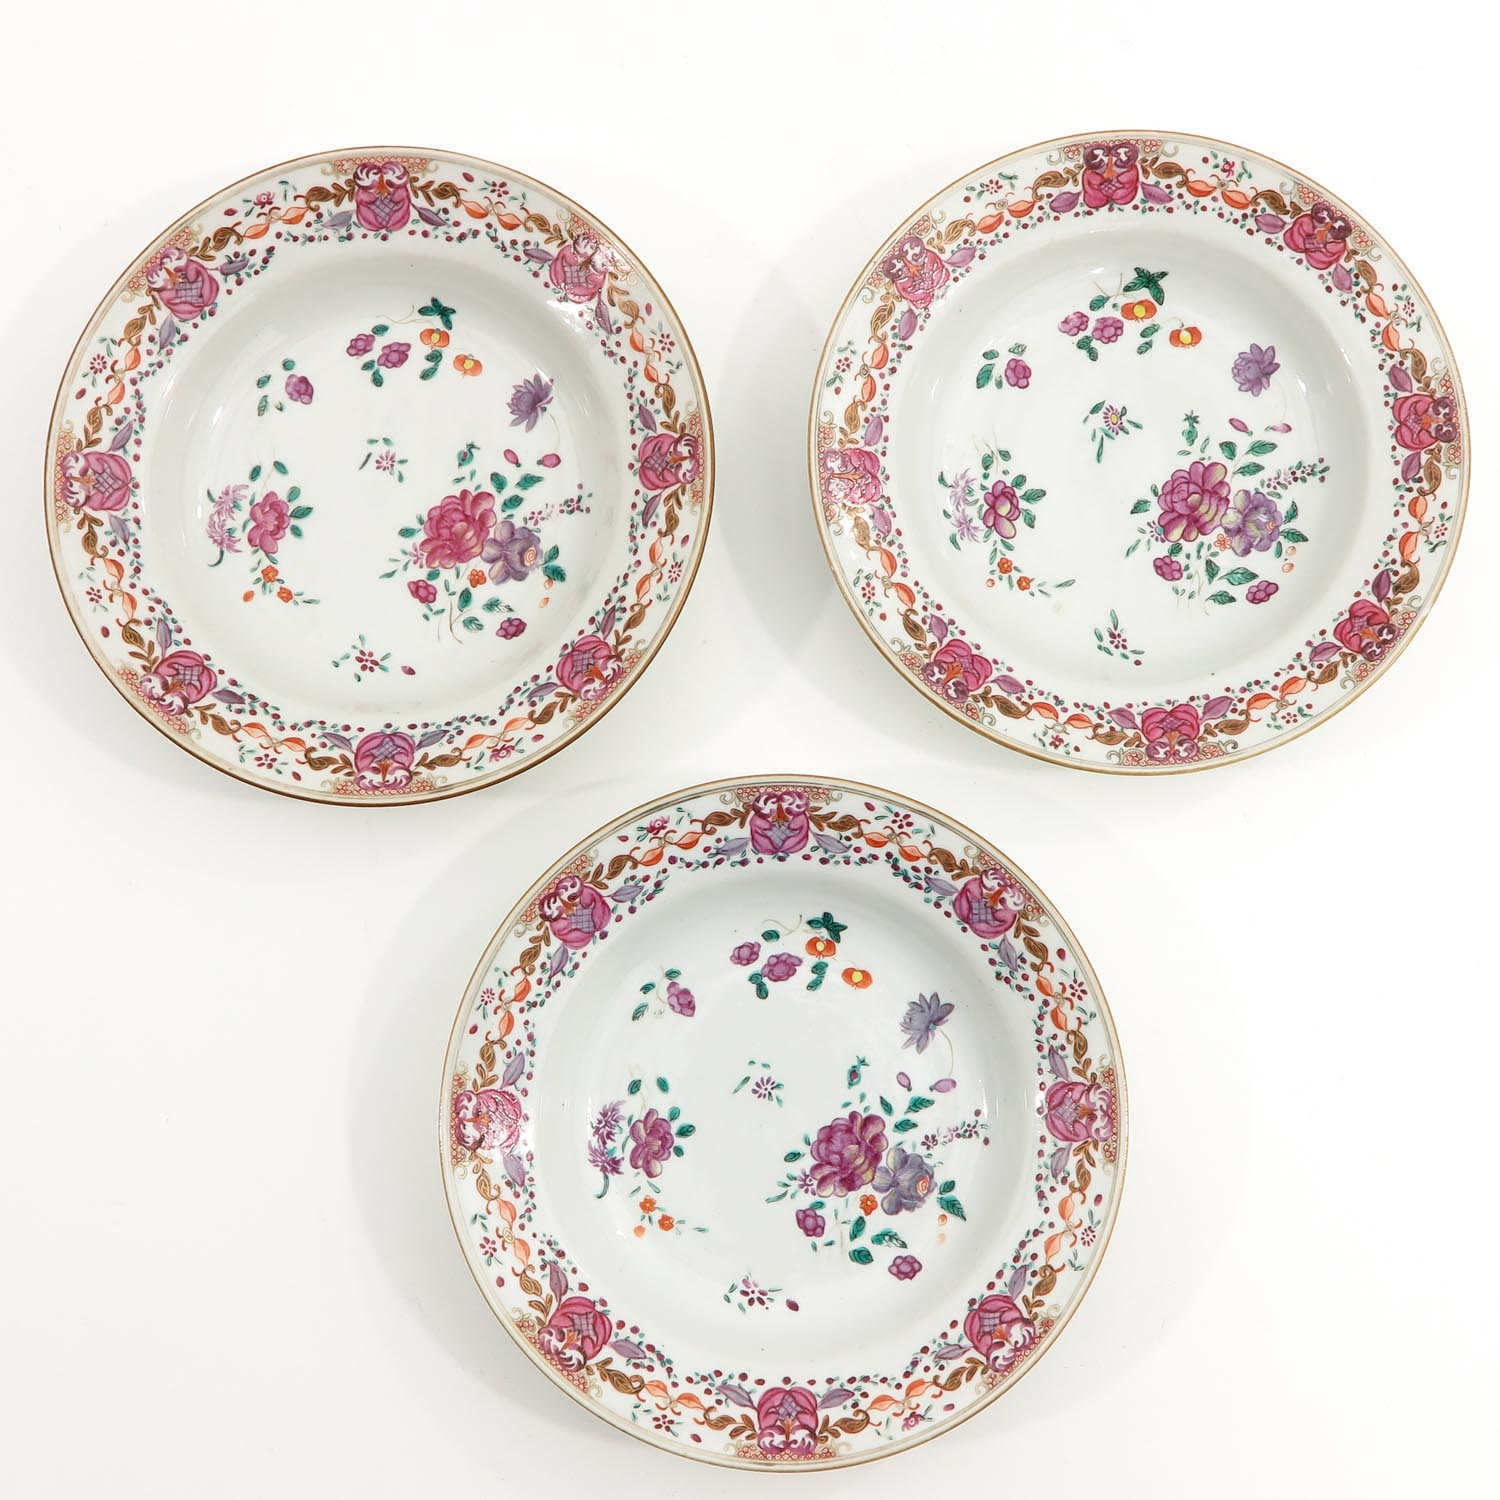 A Series of 3 Famille Rose Plates